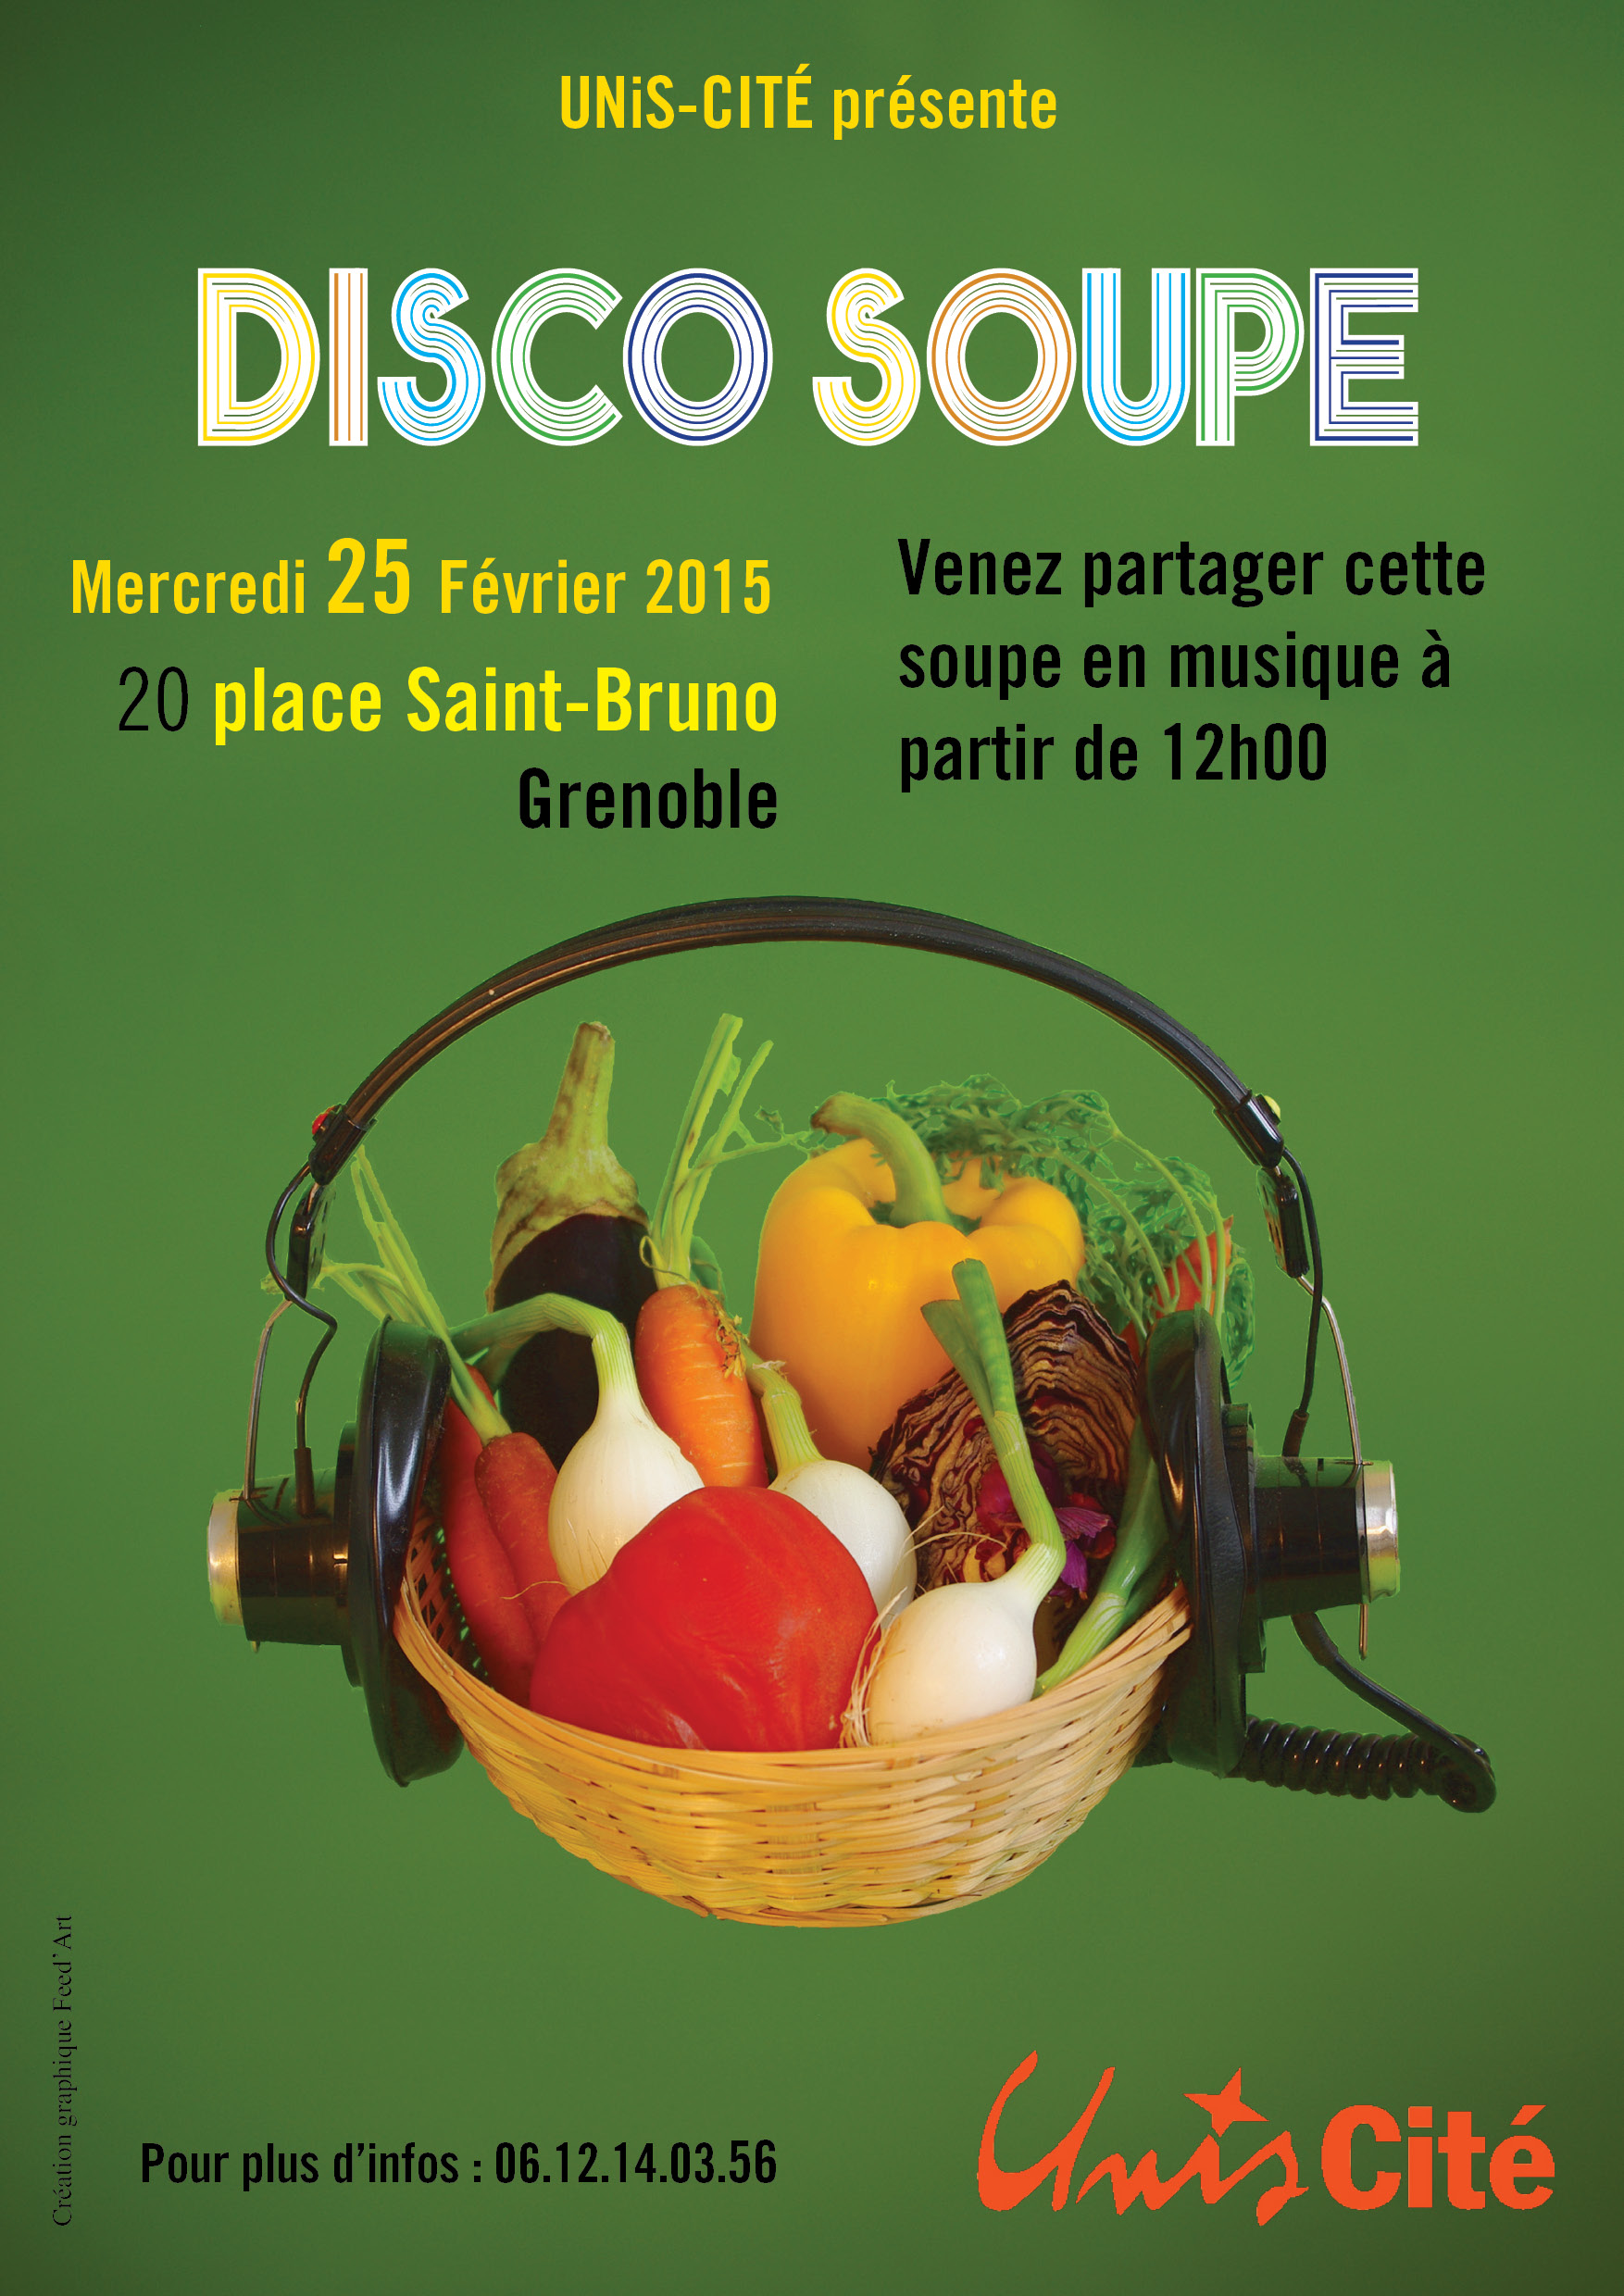 disco soupe faire de la soupe en musique au march 25 f v grenoble cap berriat. Black Bedroom Furniture Sets. Home Design Ideas